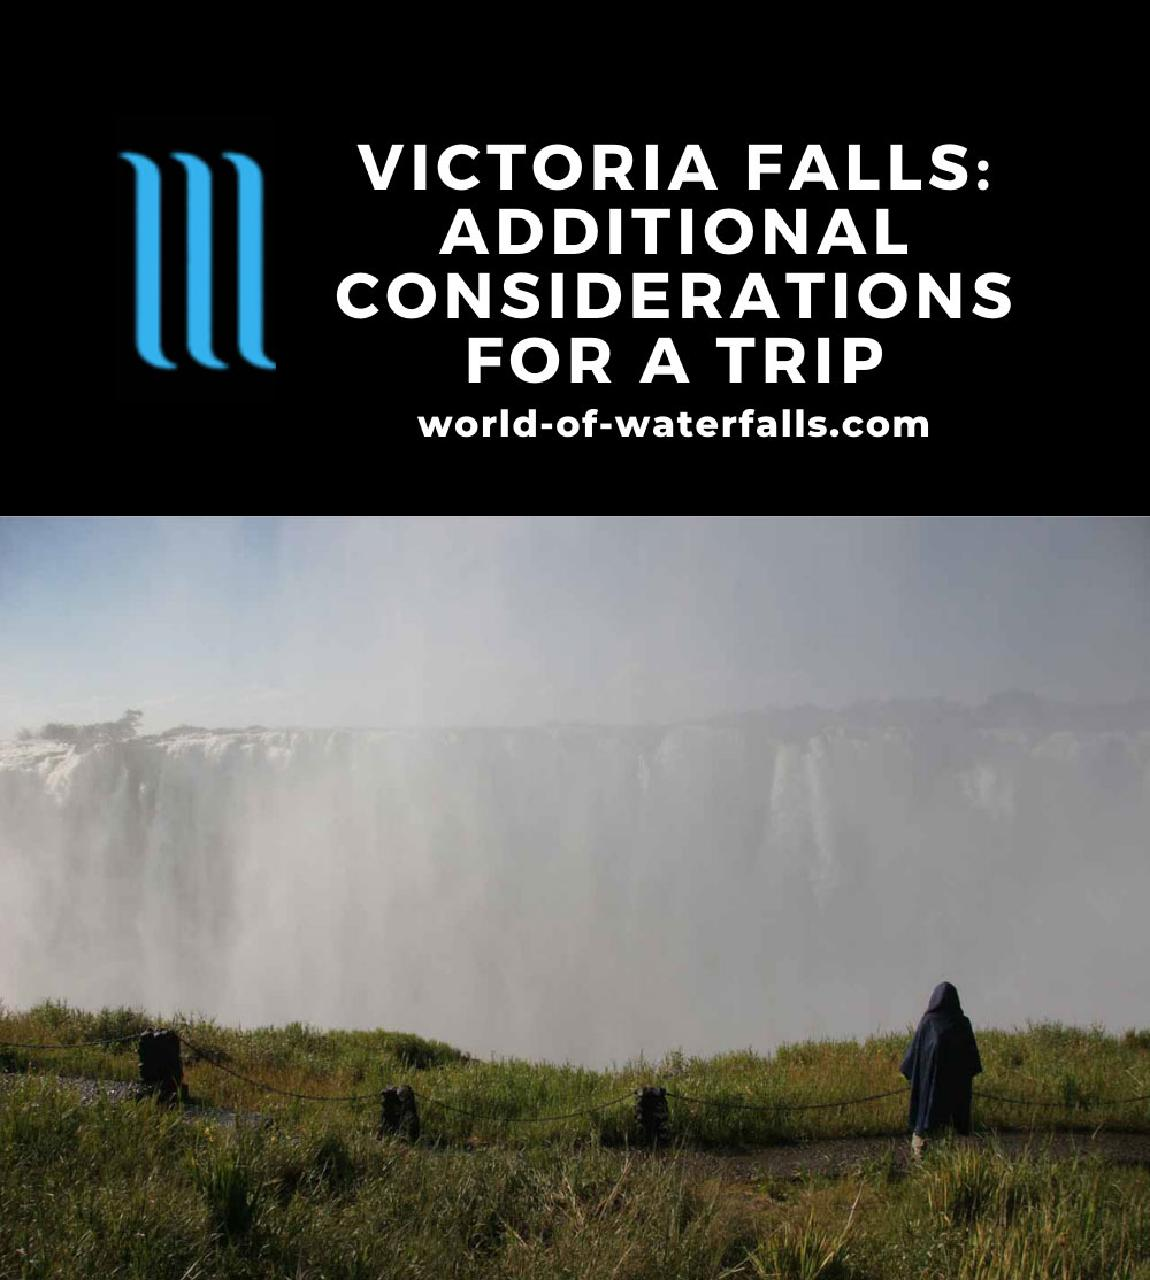 Victoria Falls: Additional Considerations for a Trip